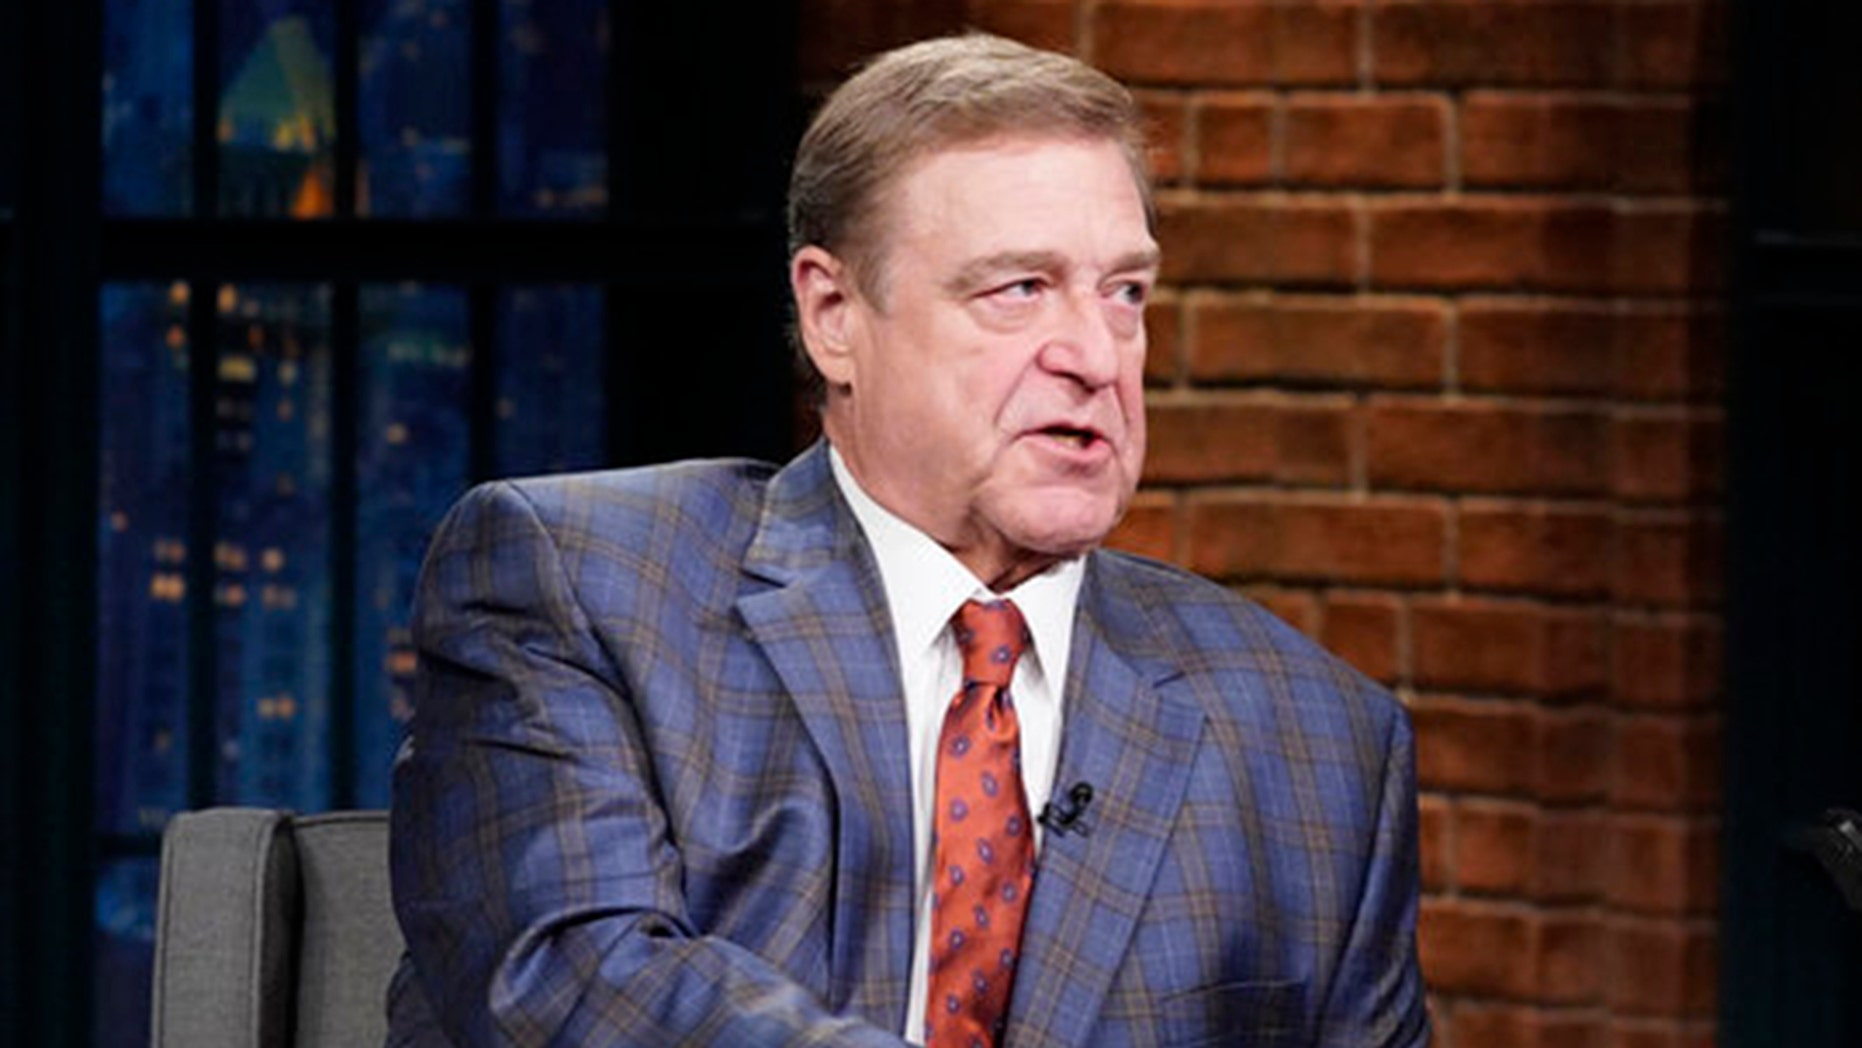 John Goodman, pictured here during an appearance on 'Late Night With Seth Meyers,' will star in a new HBO series about televangelists.